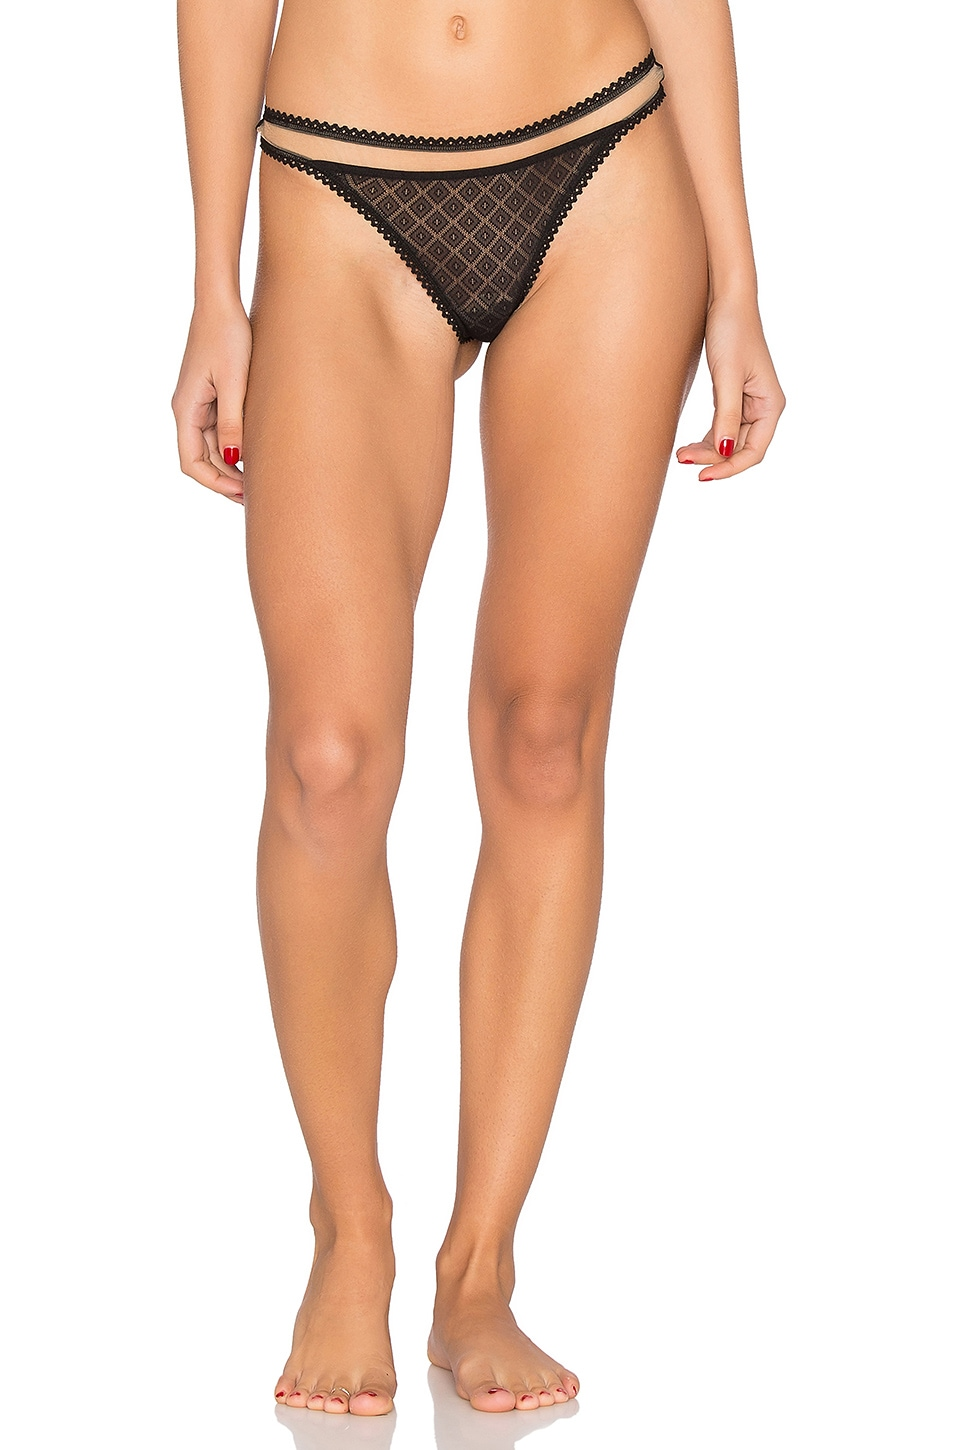 Hidden Layer Thong by Else